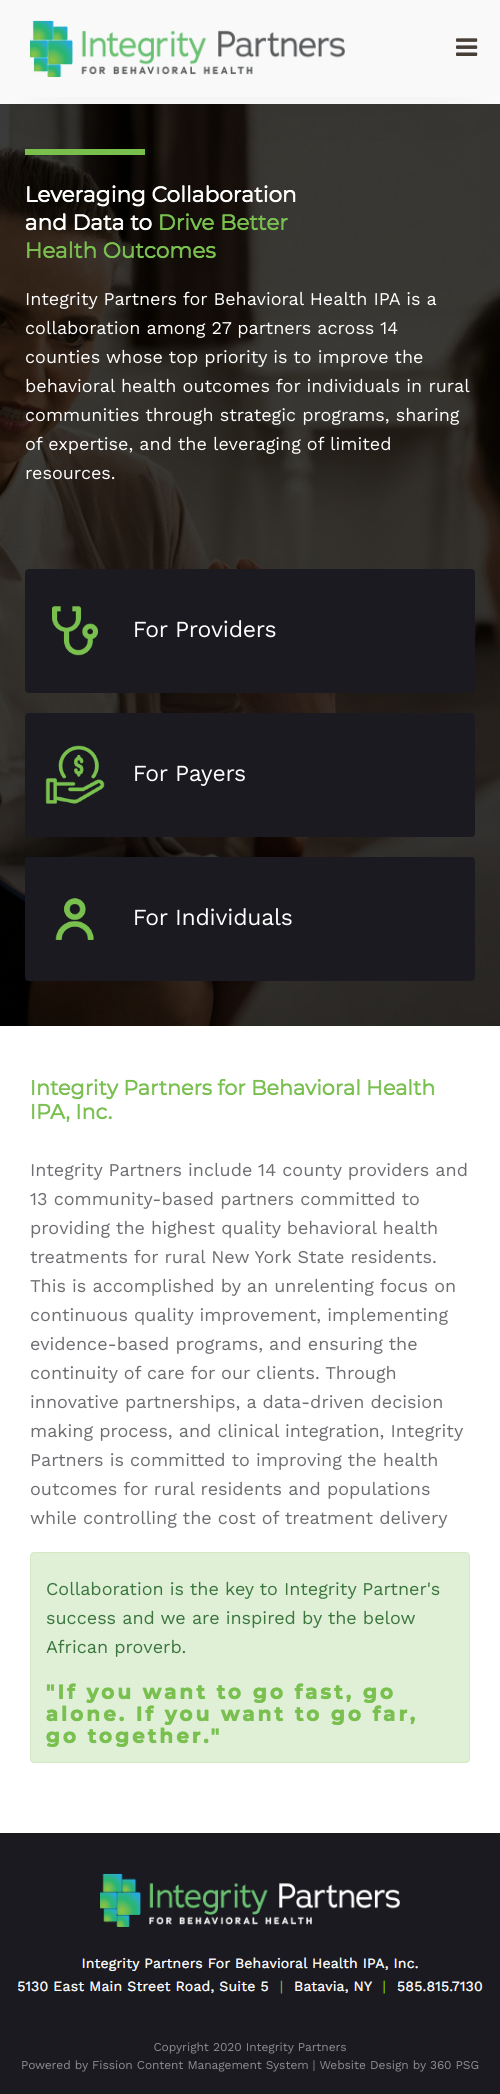 Integrity Website - Mobile